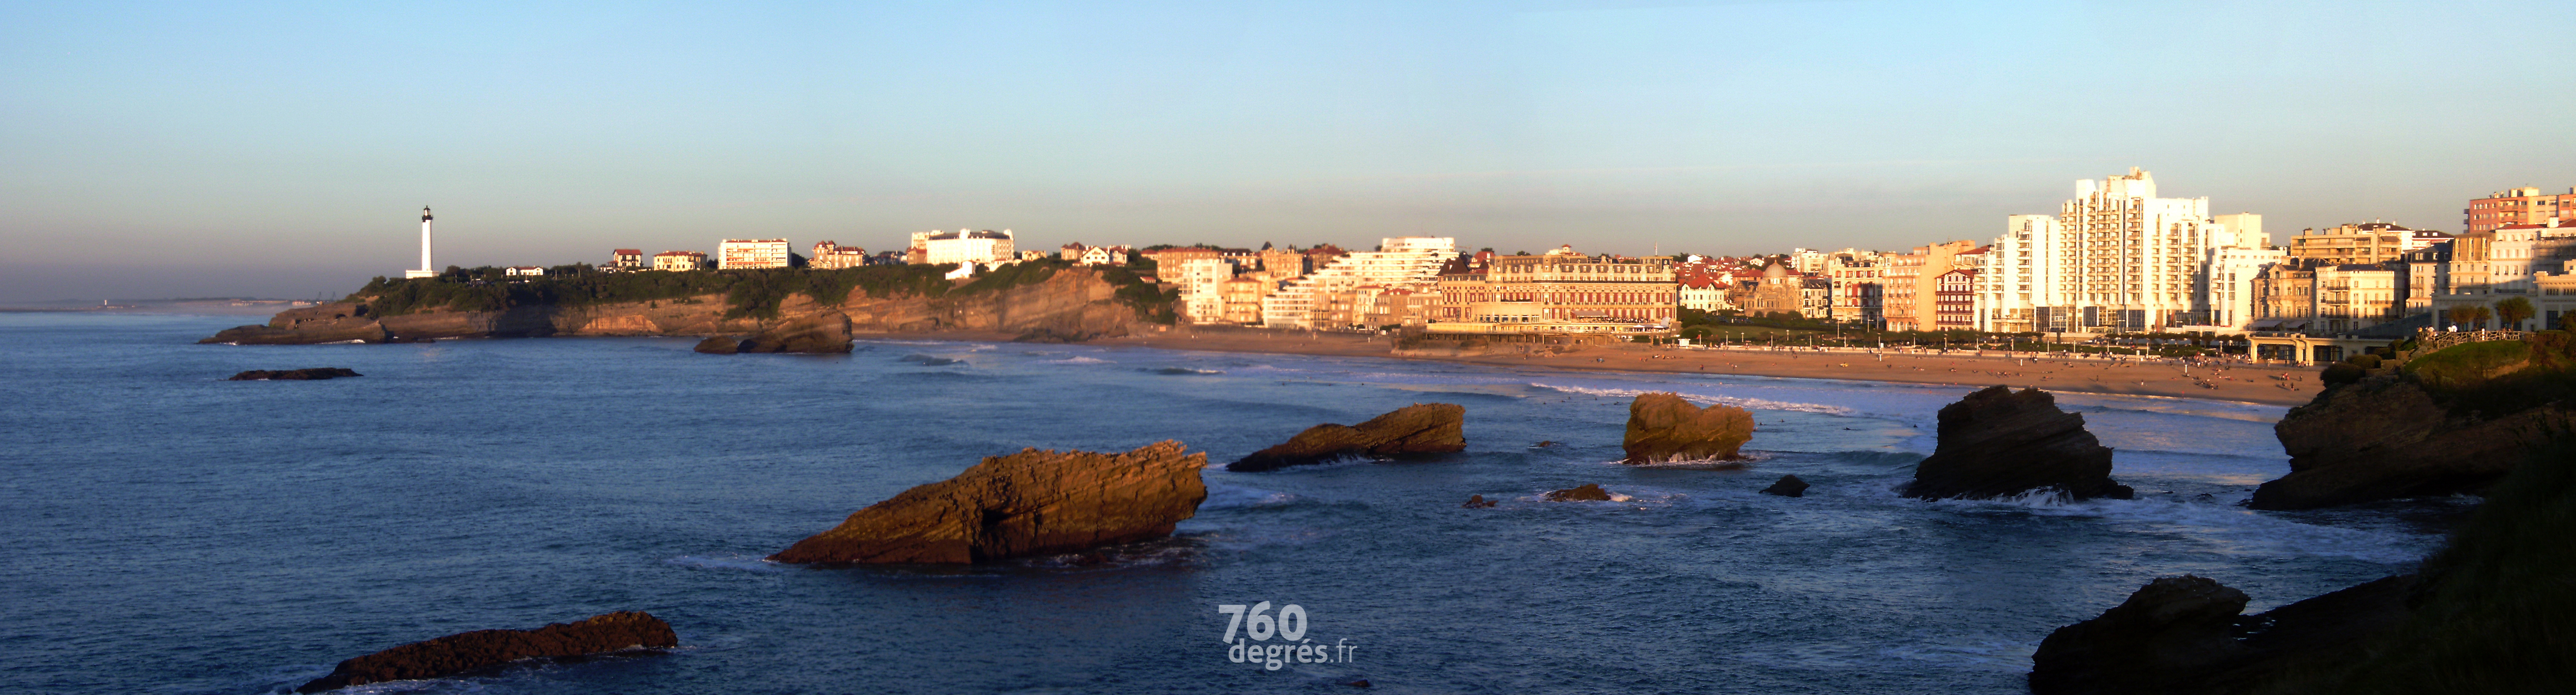 760degres-pays-basque-biarritz-09